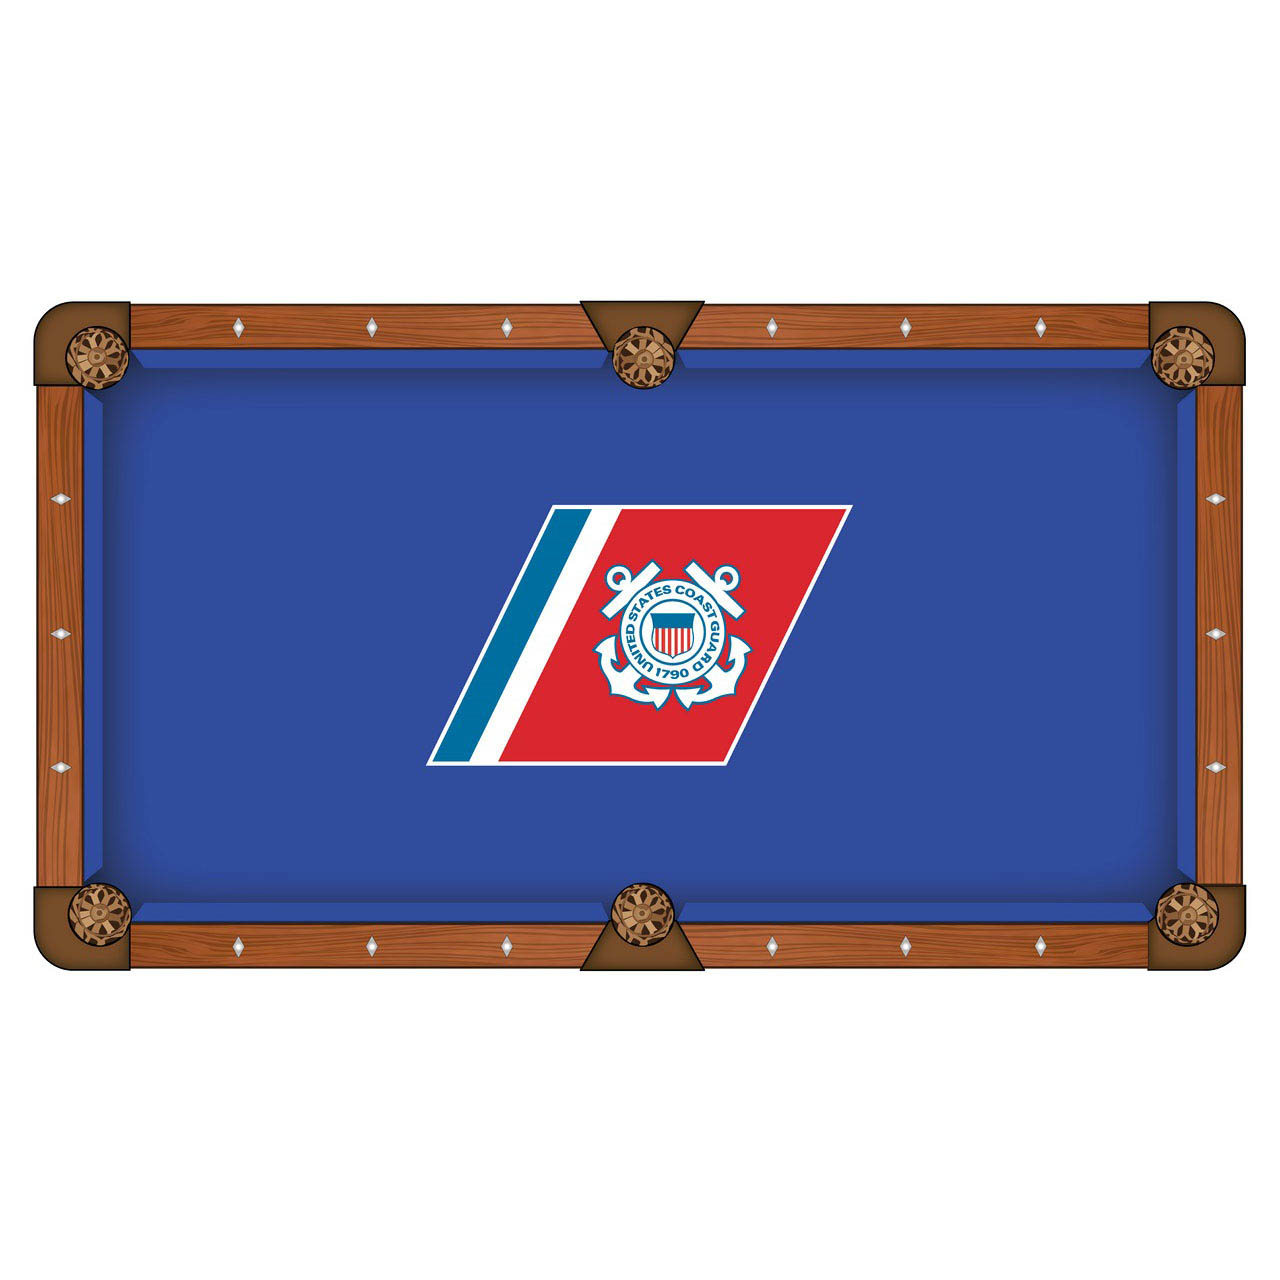 Stunning United-States-Coast-Guard-Pool-Table-Cloth Product Picture 578